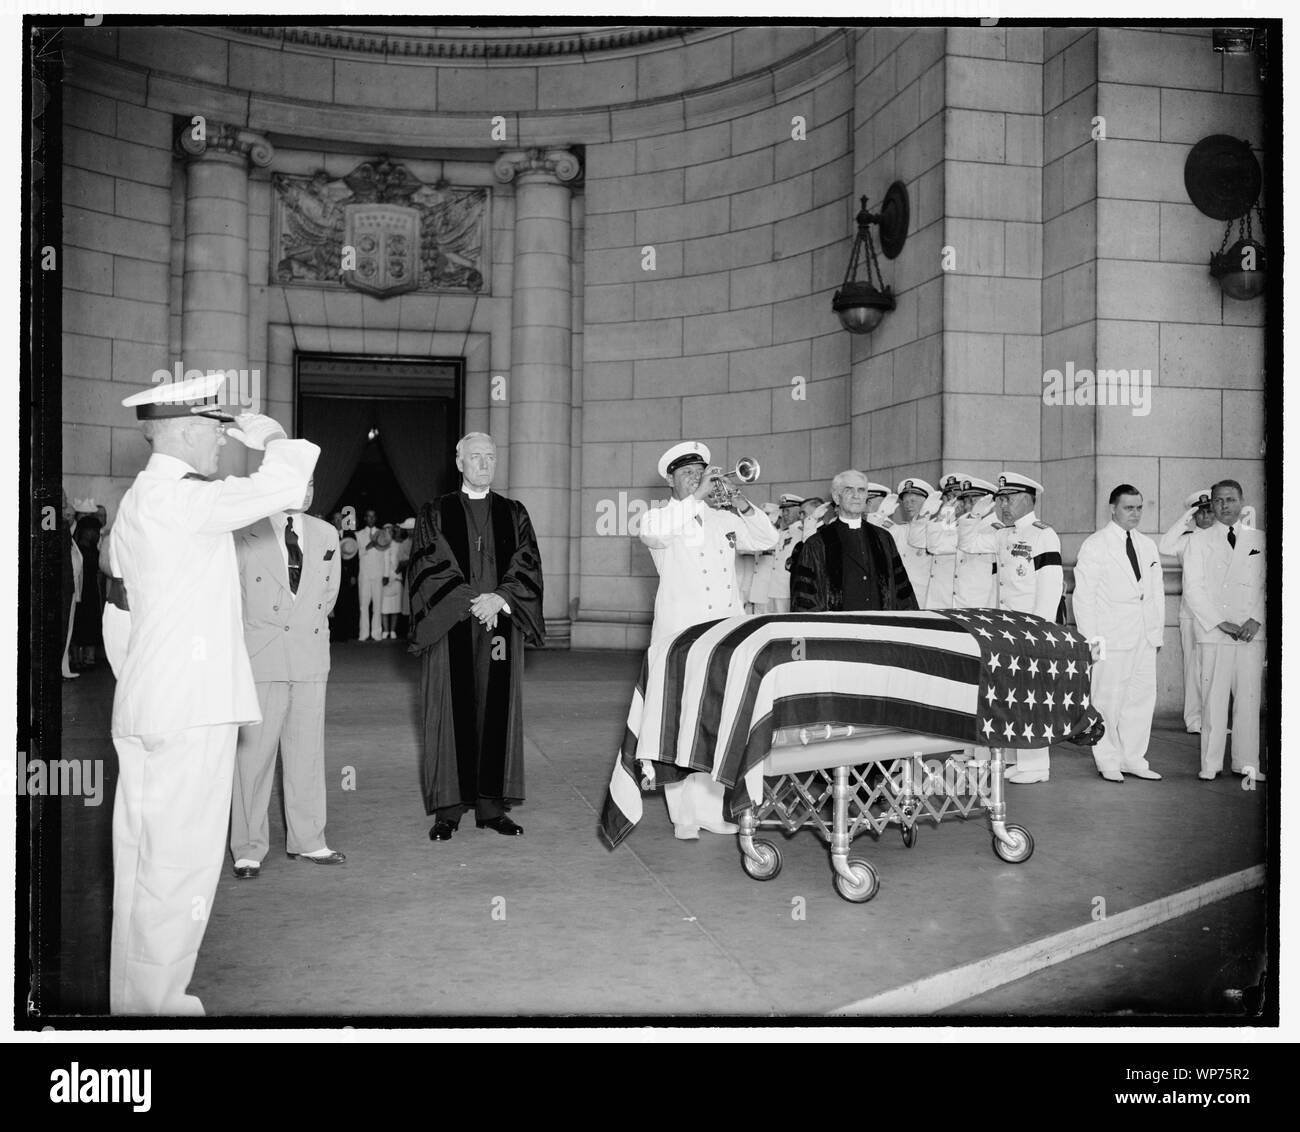 Last honors paid Navy Secretary at Union Station as bugler blows taps. Washington, D.C., July 10. While Senate Chaplain, the Rev. Ze Barney Phillips, stood on the bugler's right and the Rev. James Shera Montgomery, Chaplain of the House stood on the left, a navy bugler blew taps over the casket of Navy Secretary Swanson when the body arrived on a gun caisson at Union Station for entrainment to Richmond for the funeral Stock Photo